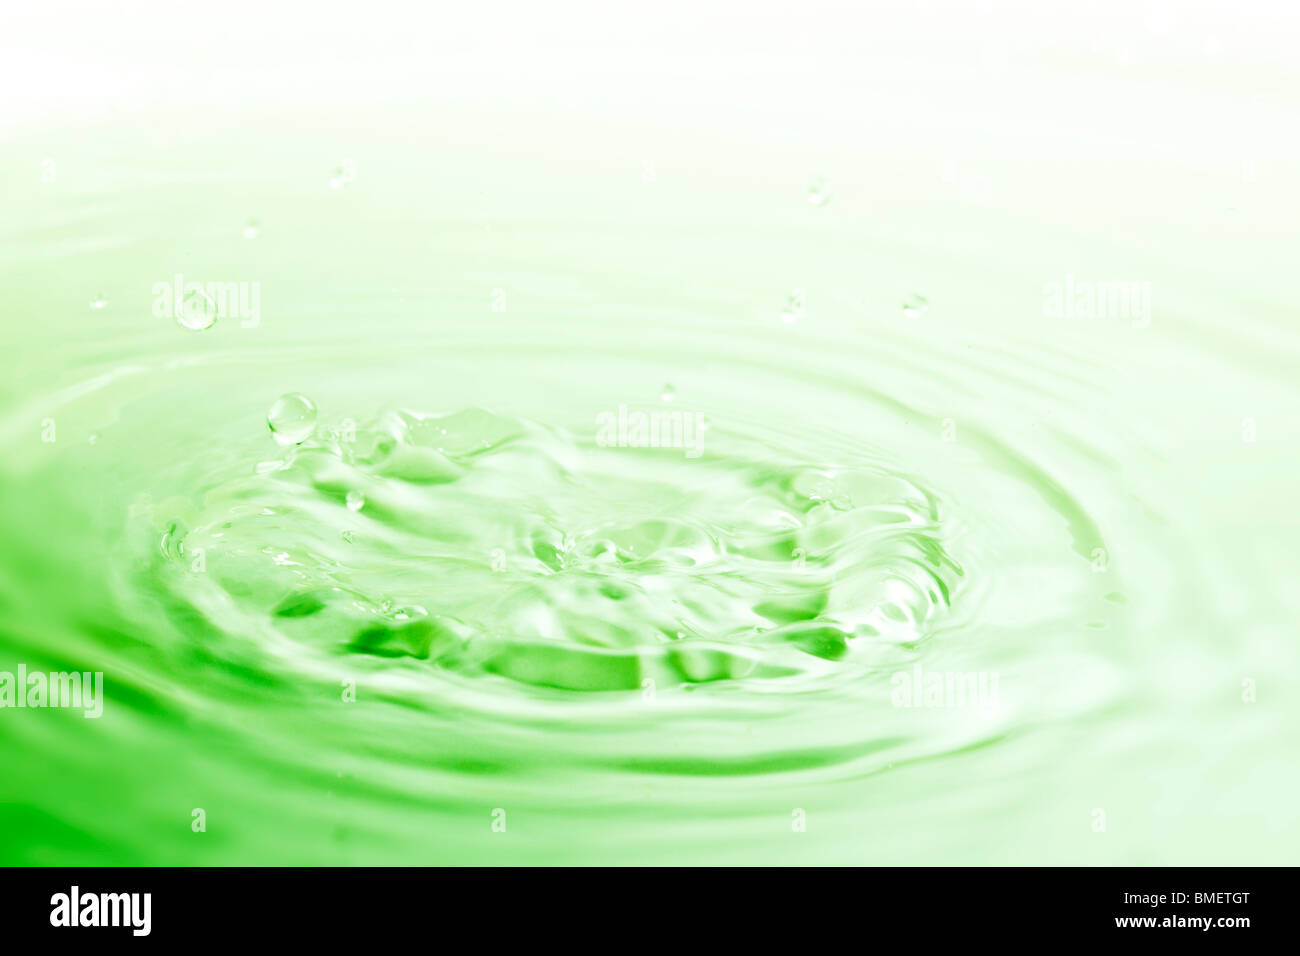 image of the pureness and the simplicity of a color water drop - Stock Image